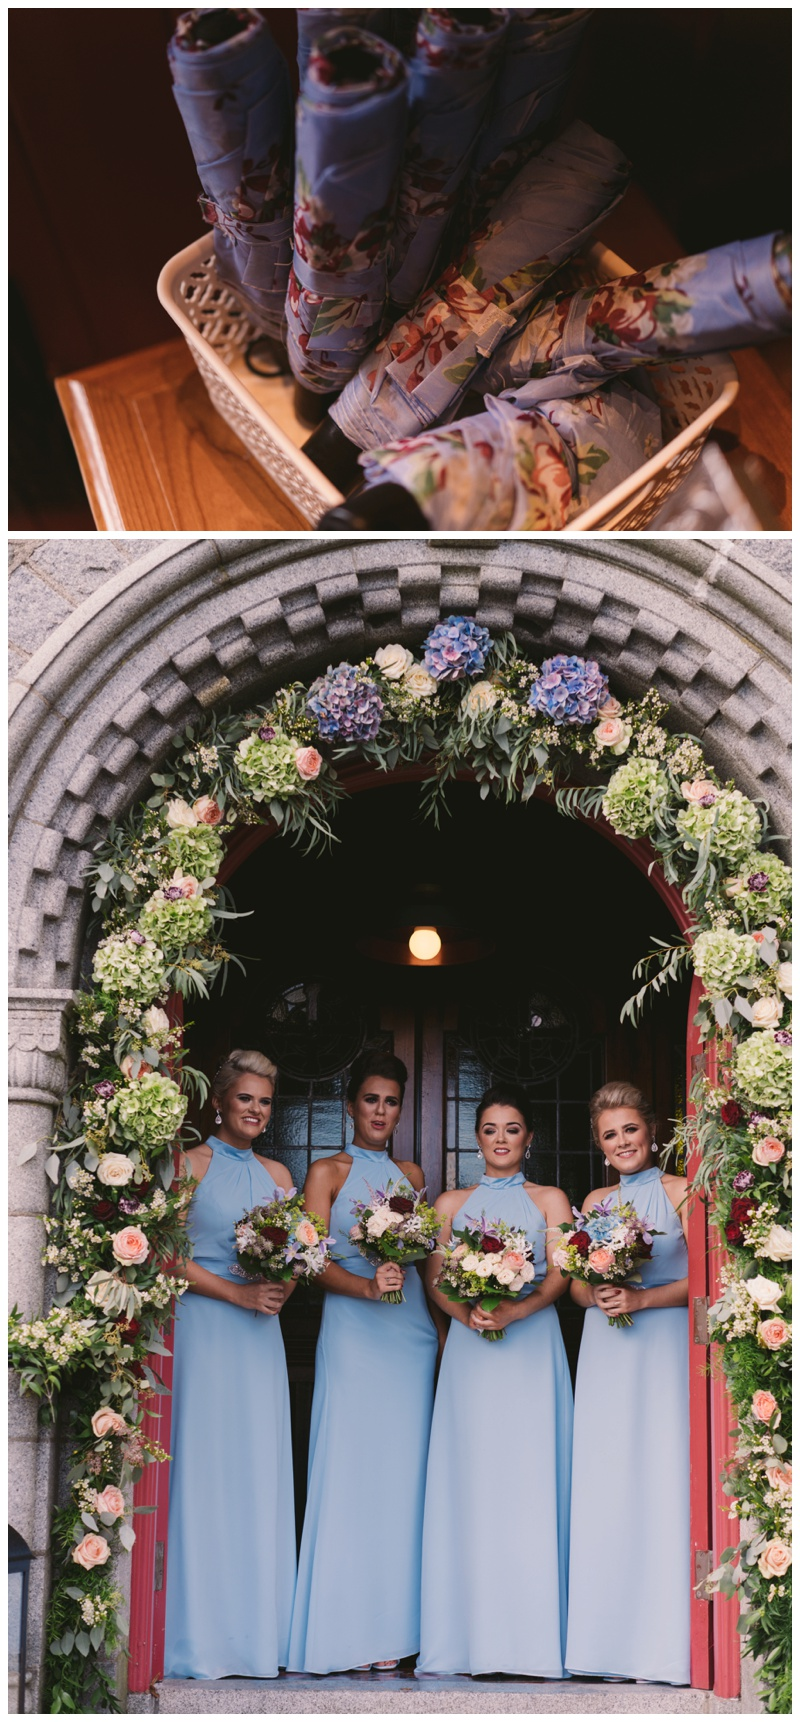 bellingham_castle_wedding_photographer_ireland_0036.jpg